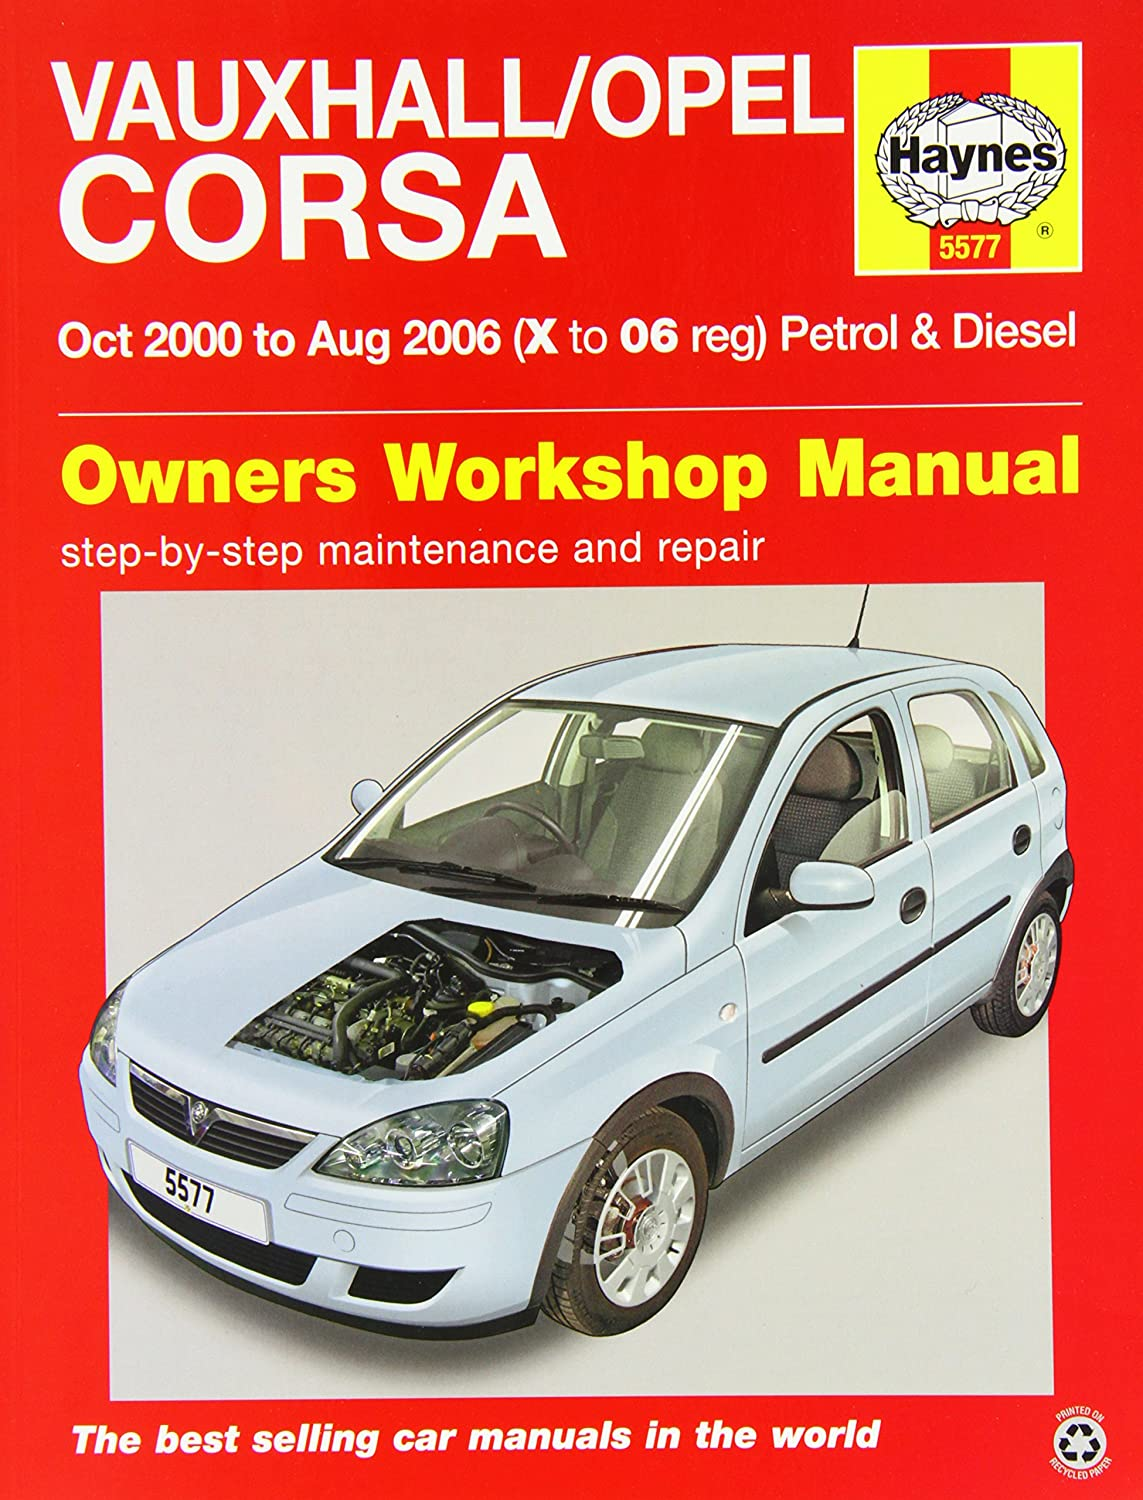 vauxhall opel corsa service and repair manual 2000 2006 haynes rh amazon co uk Haynes Repair Manual Online View Haynes Repair Manual 1987 Dodge Ram 100